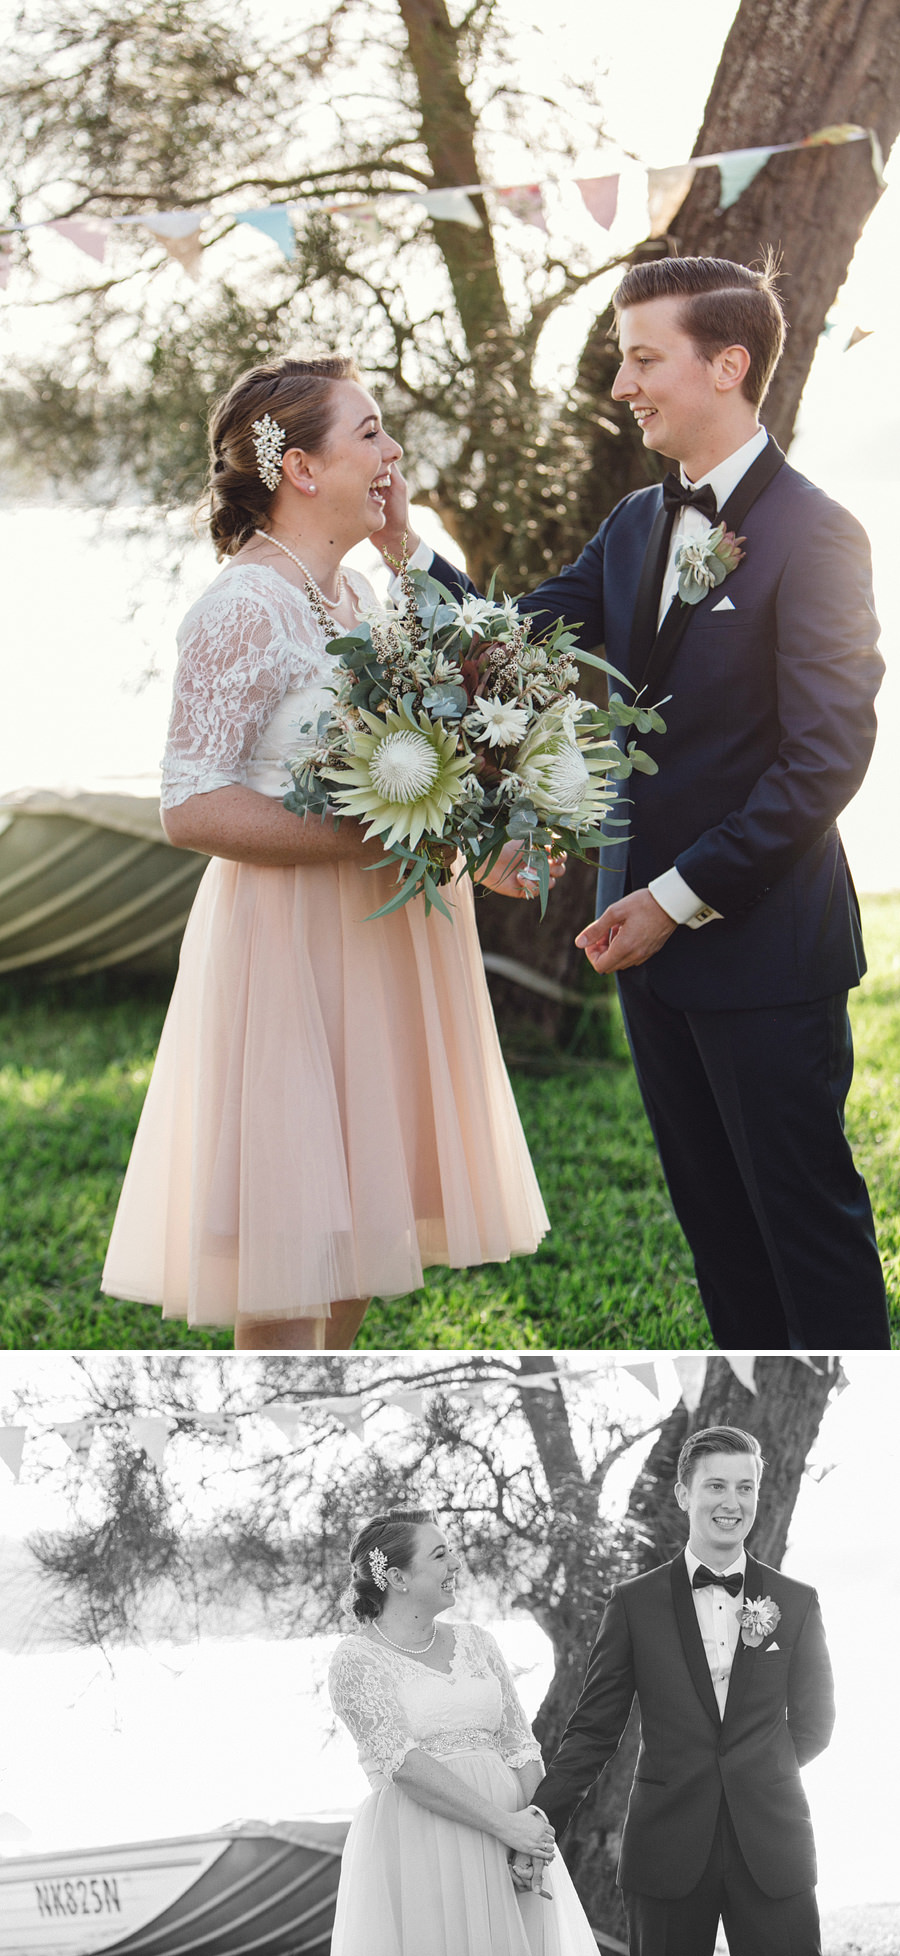 Northern Beaches Wedding Photographer: Ceremony